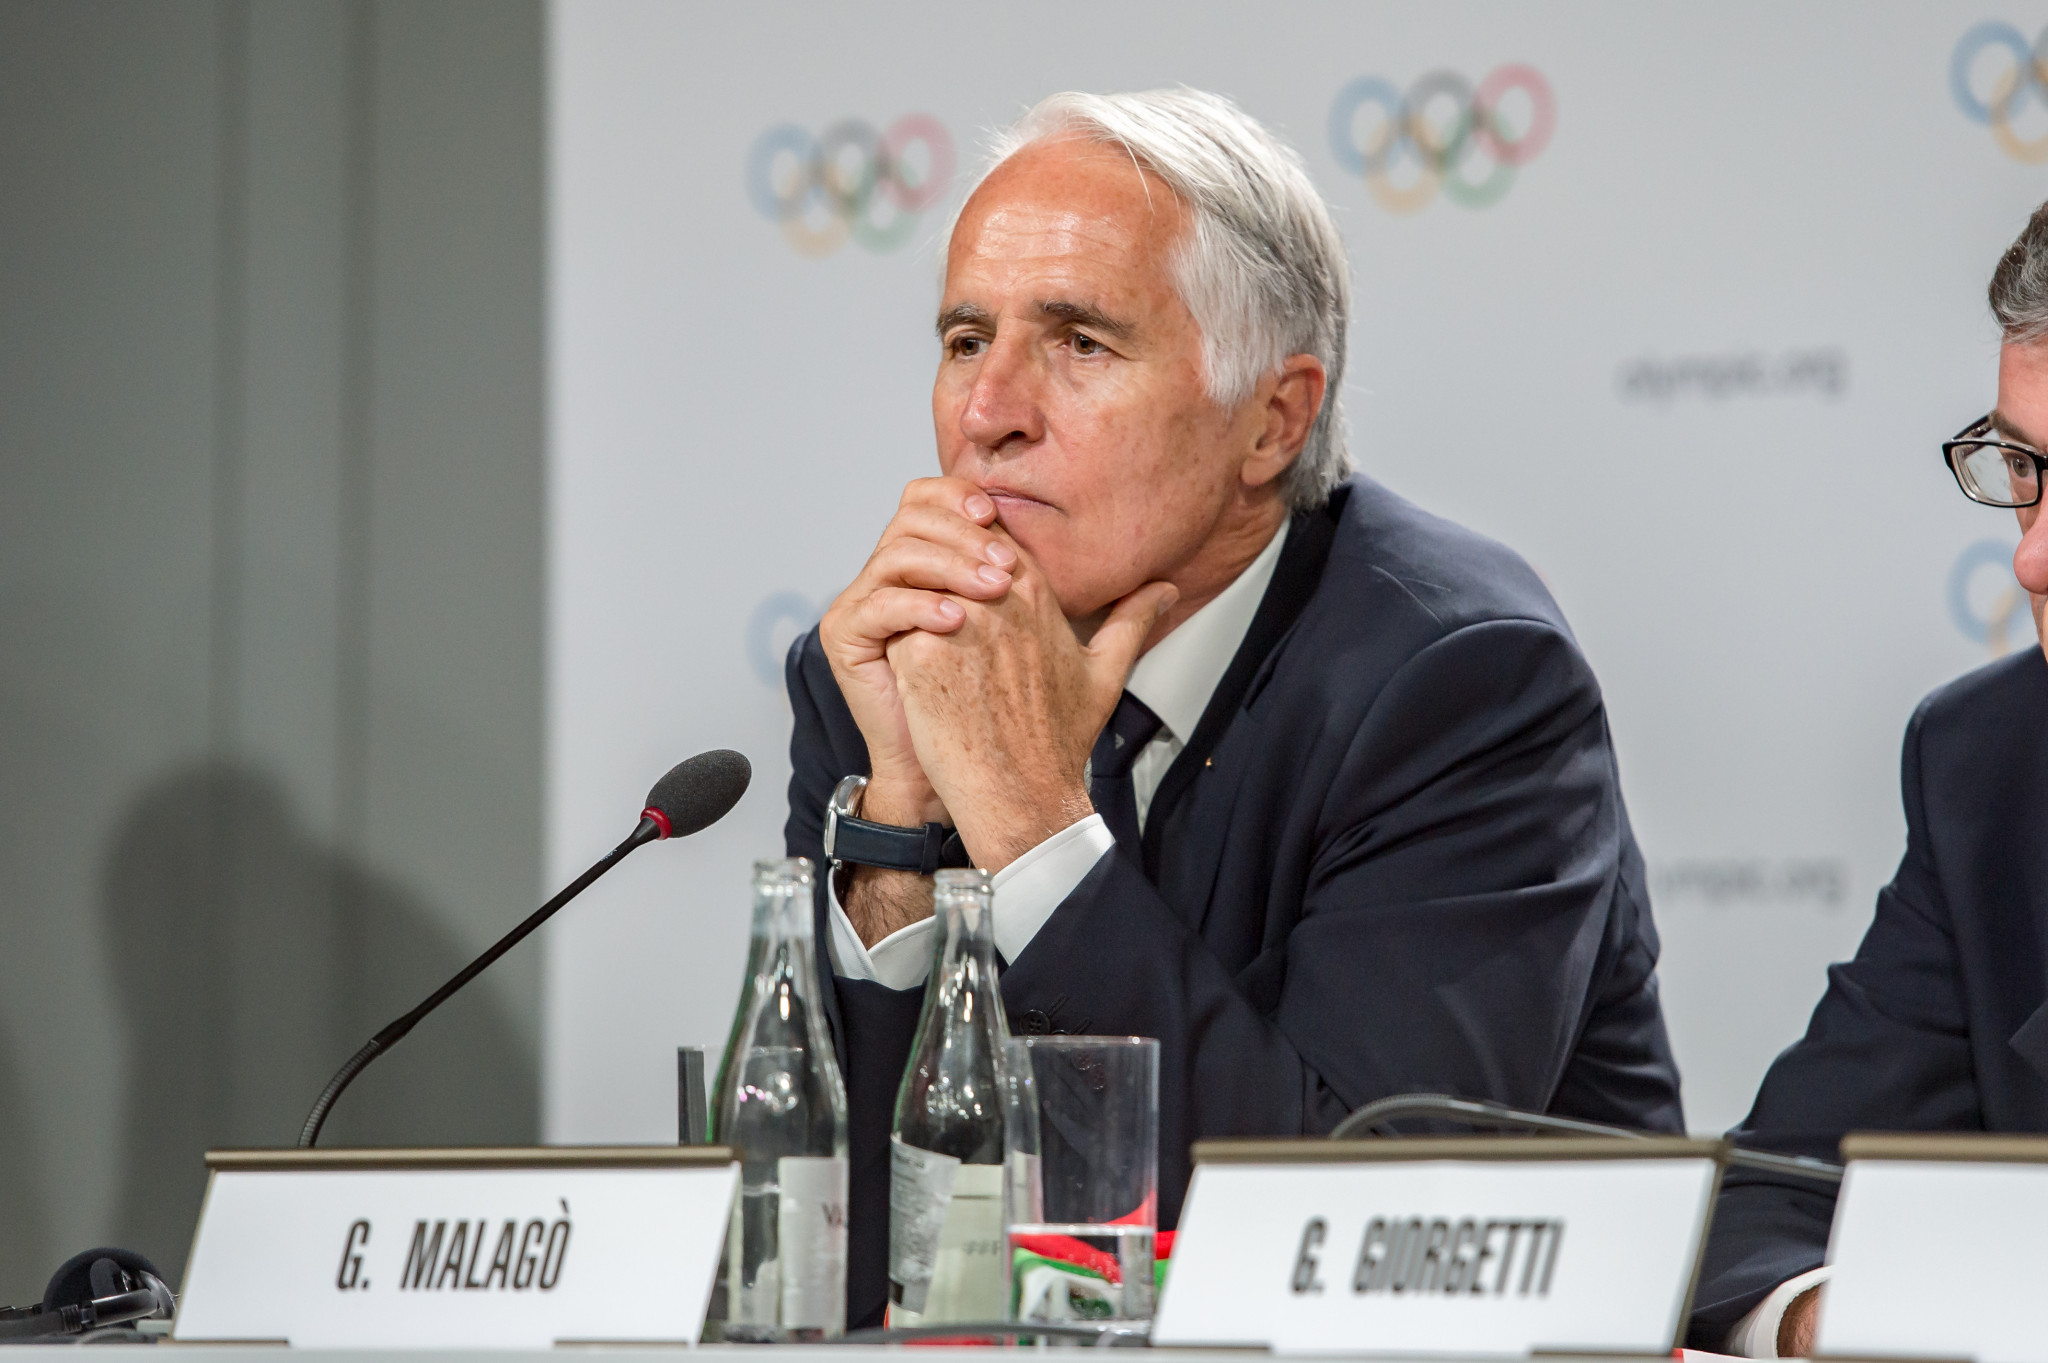 CONI President Giovanni Malagò has vowed to deliver an